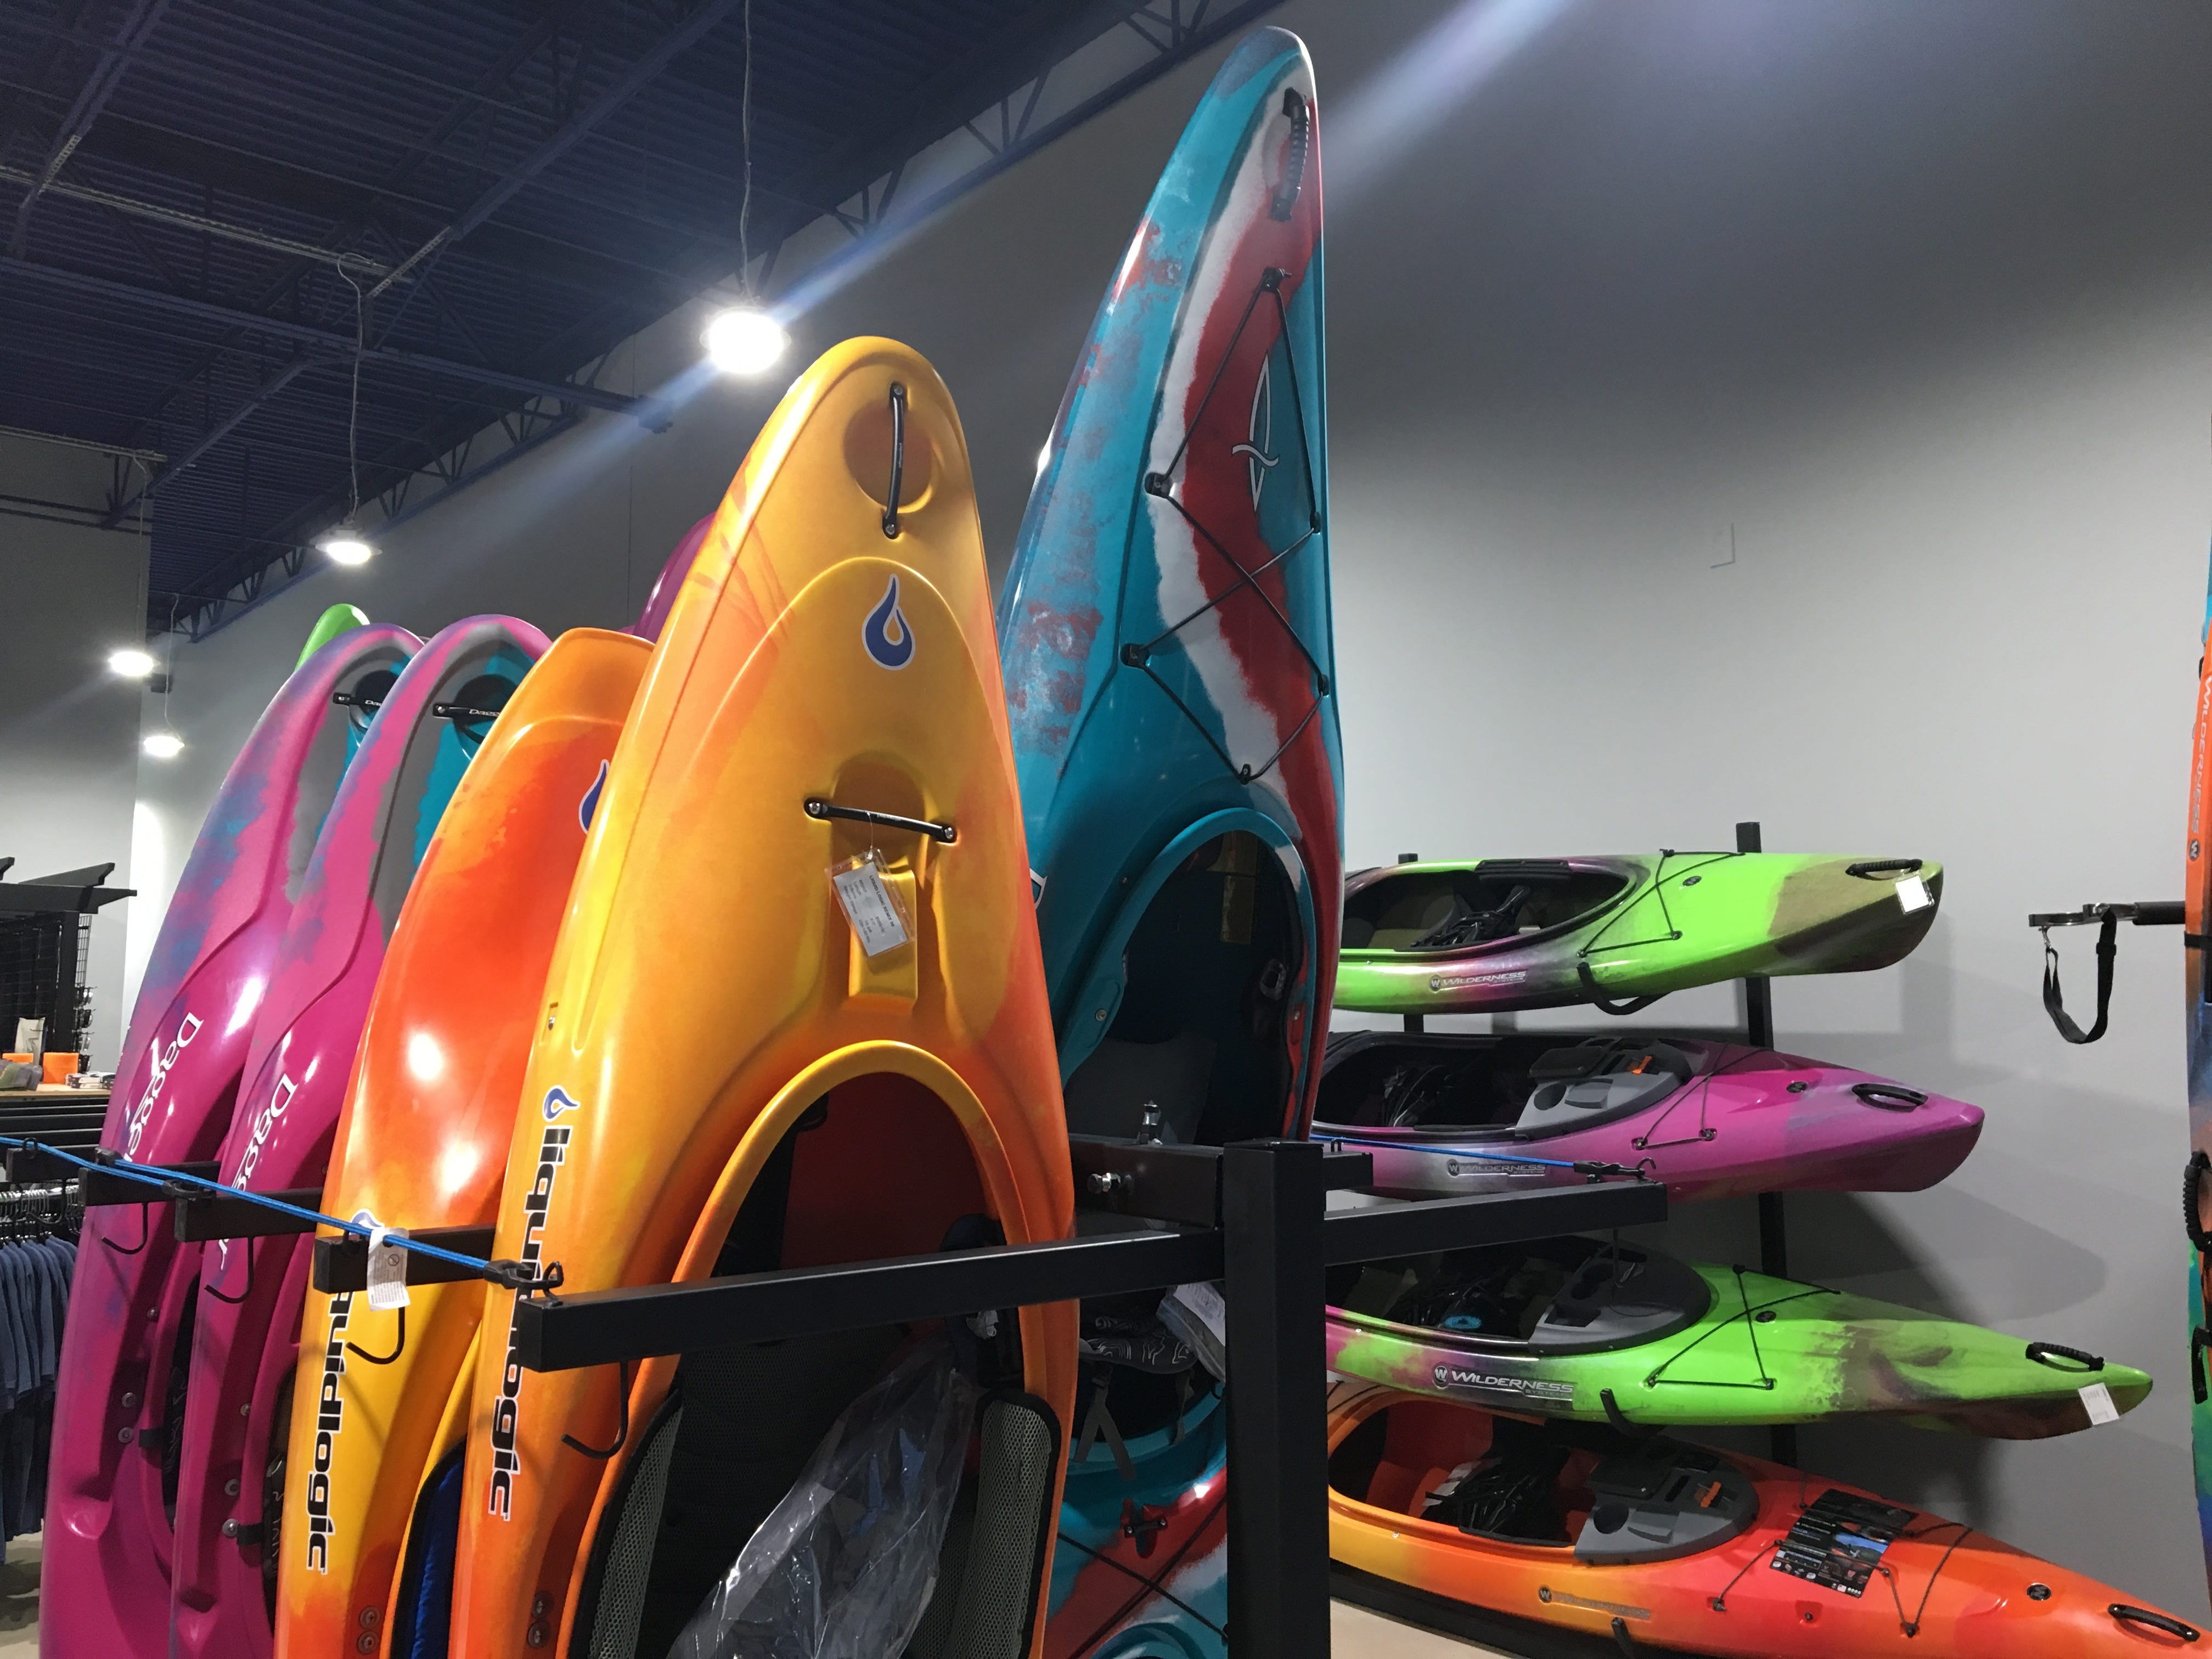 Whitewater enthusiasts will find top-of-the-line kayaks at Hook 1 outfitters in Murfreesboro.